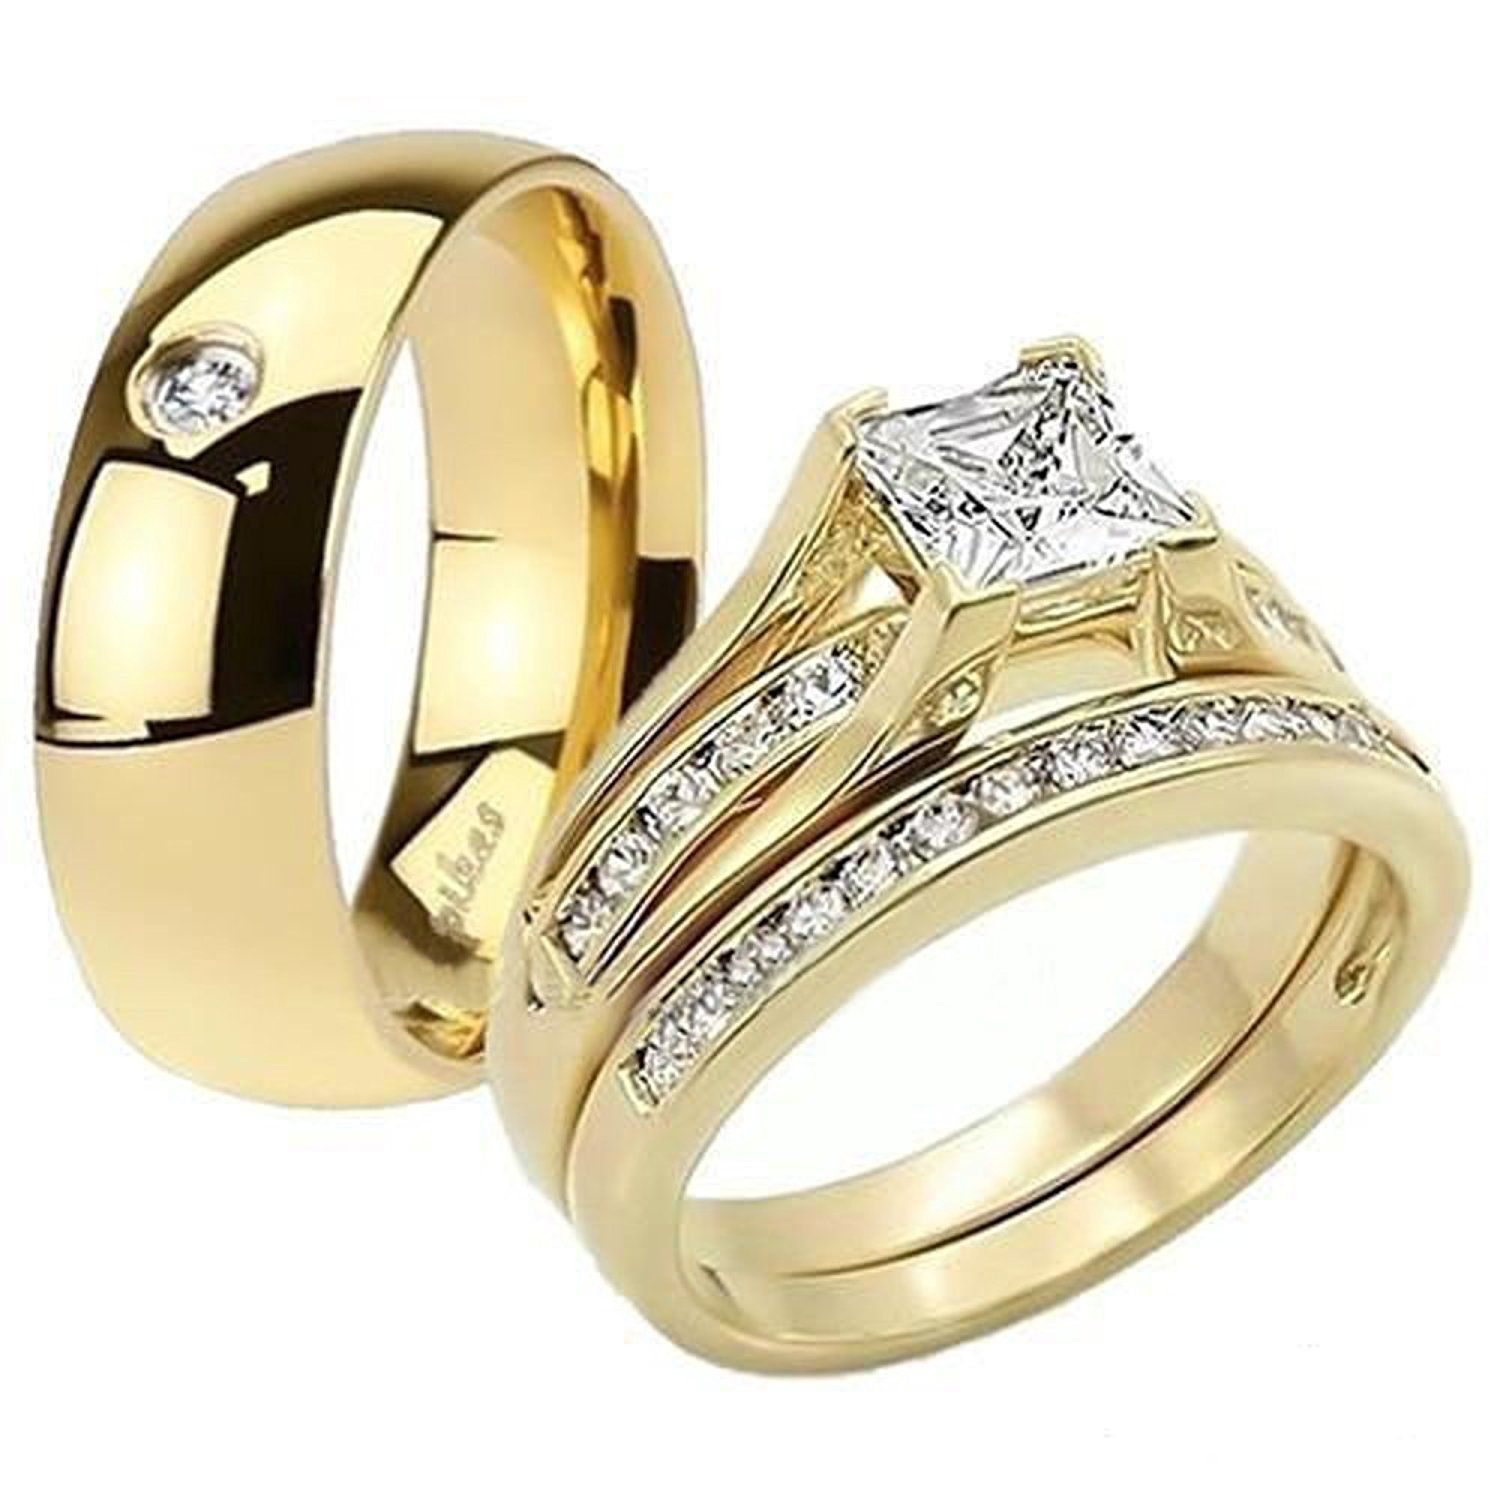 His and Her 14K G.P. Stainless Steel 3pc Wedding